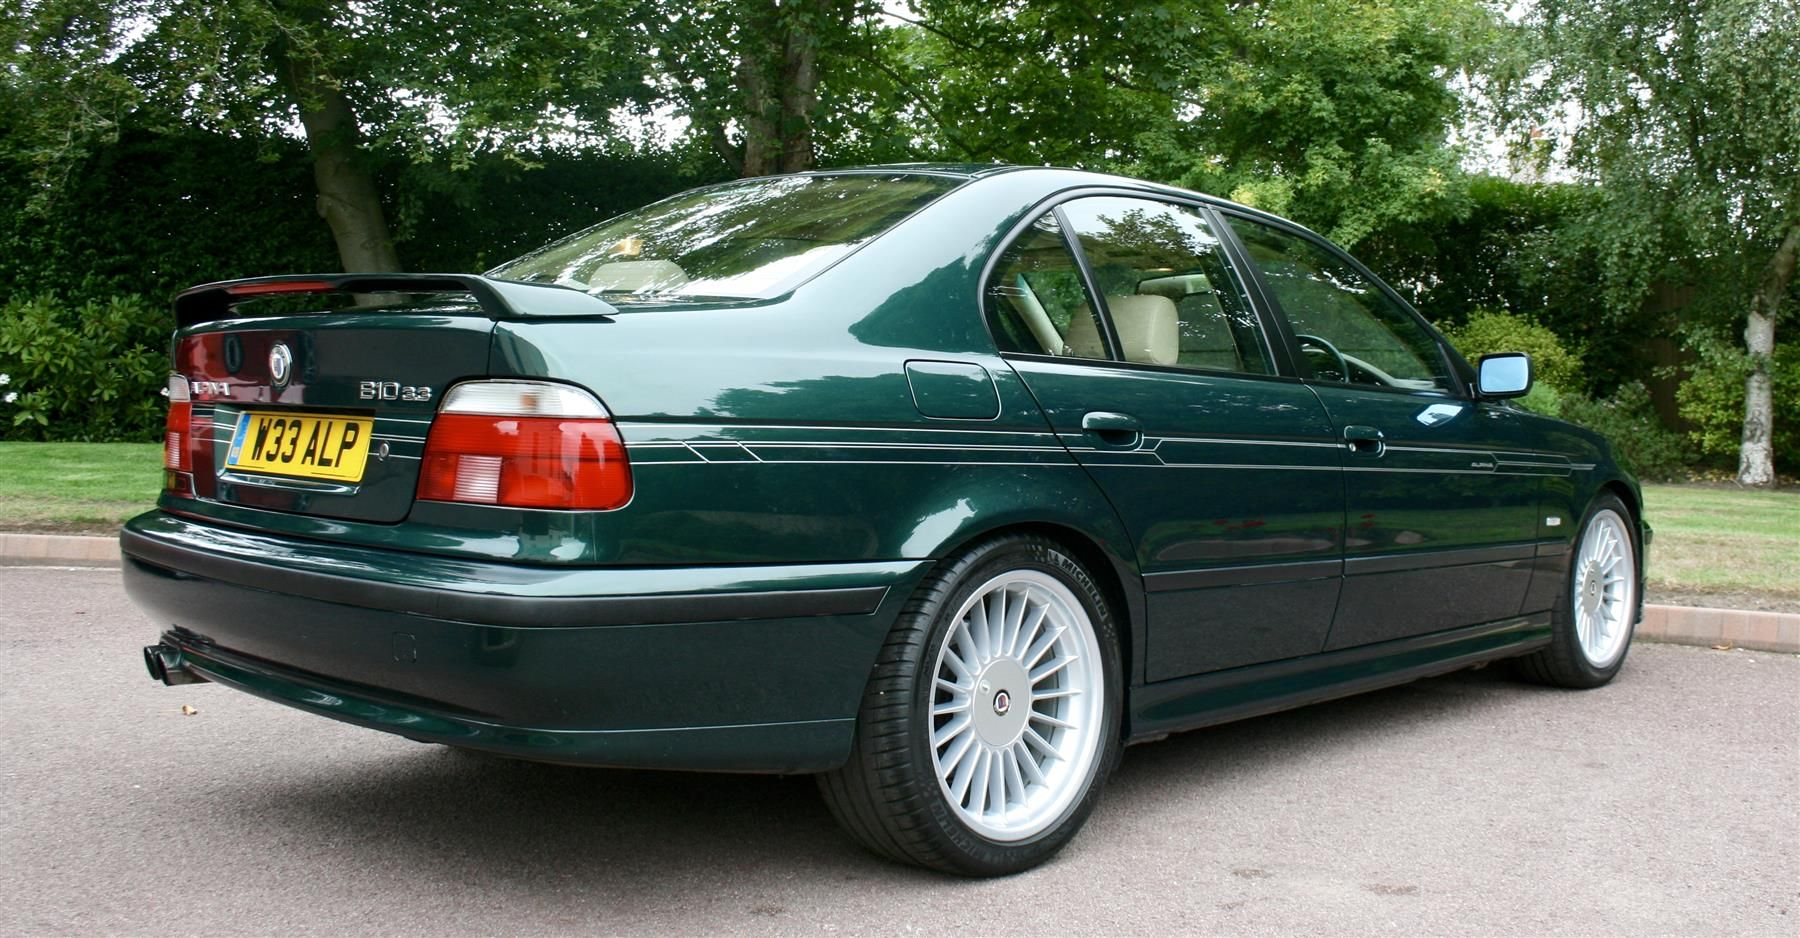 Used 2000 Bmw Alpina For Sale In Wirral Pistonheads